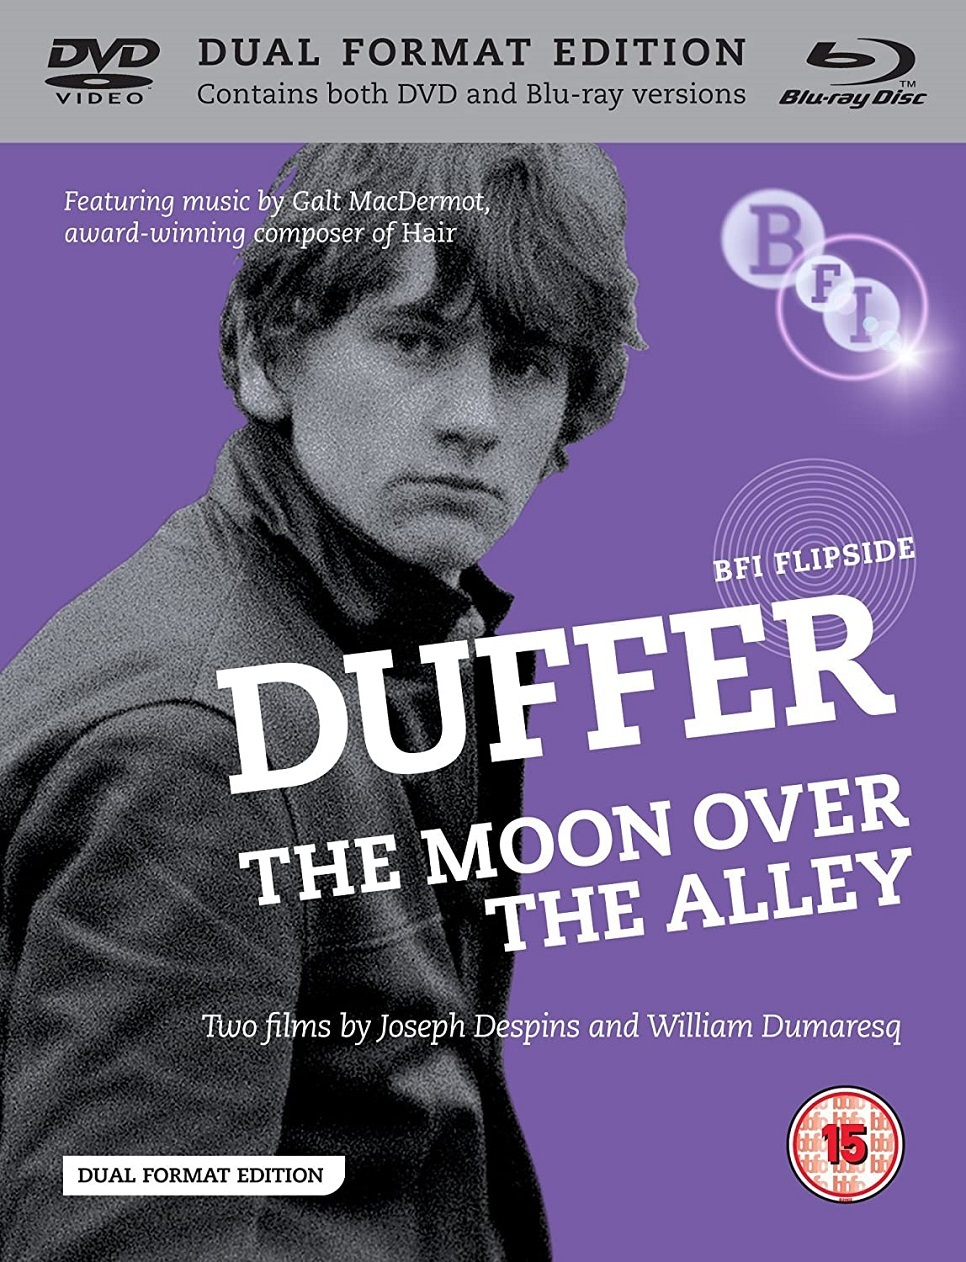 The Moon Over the Alley (1976) [British Film Institute]